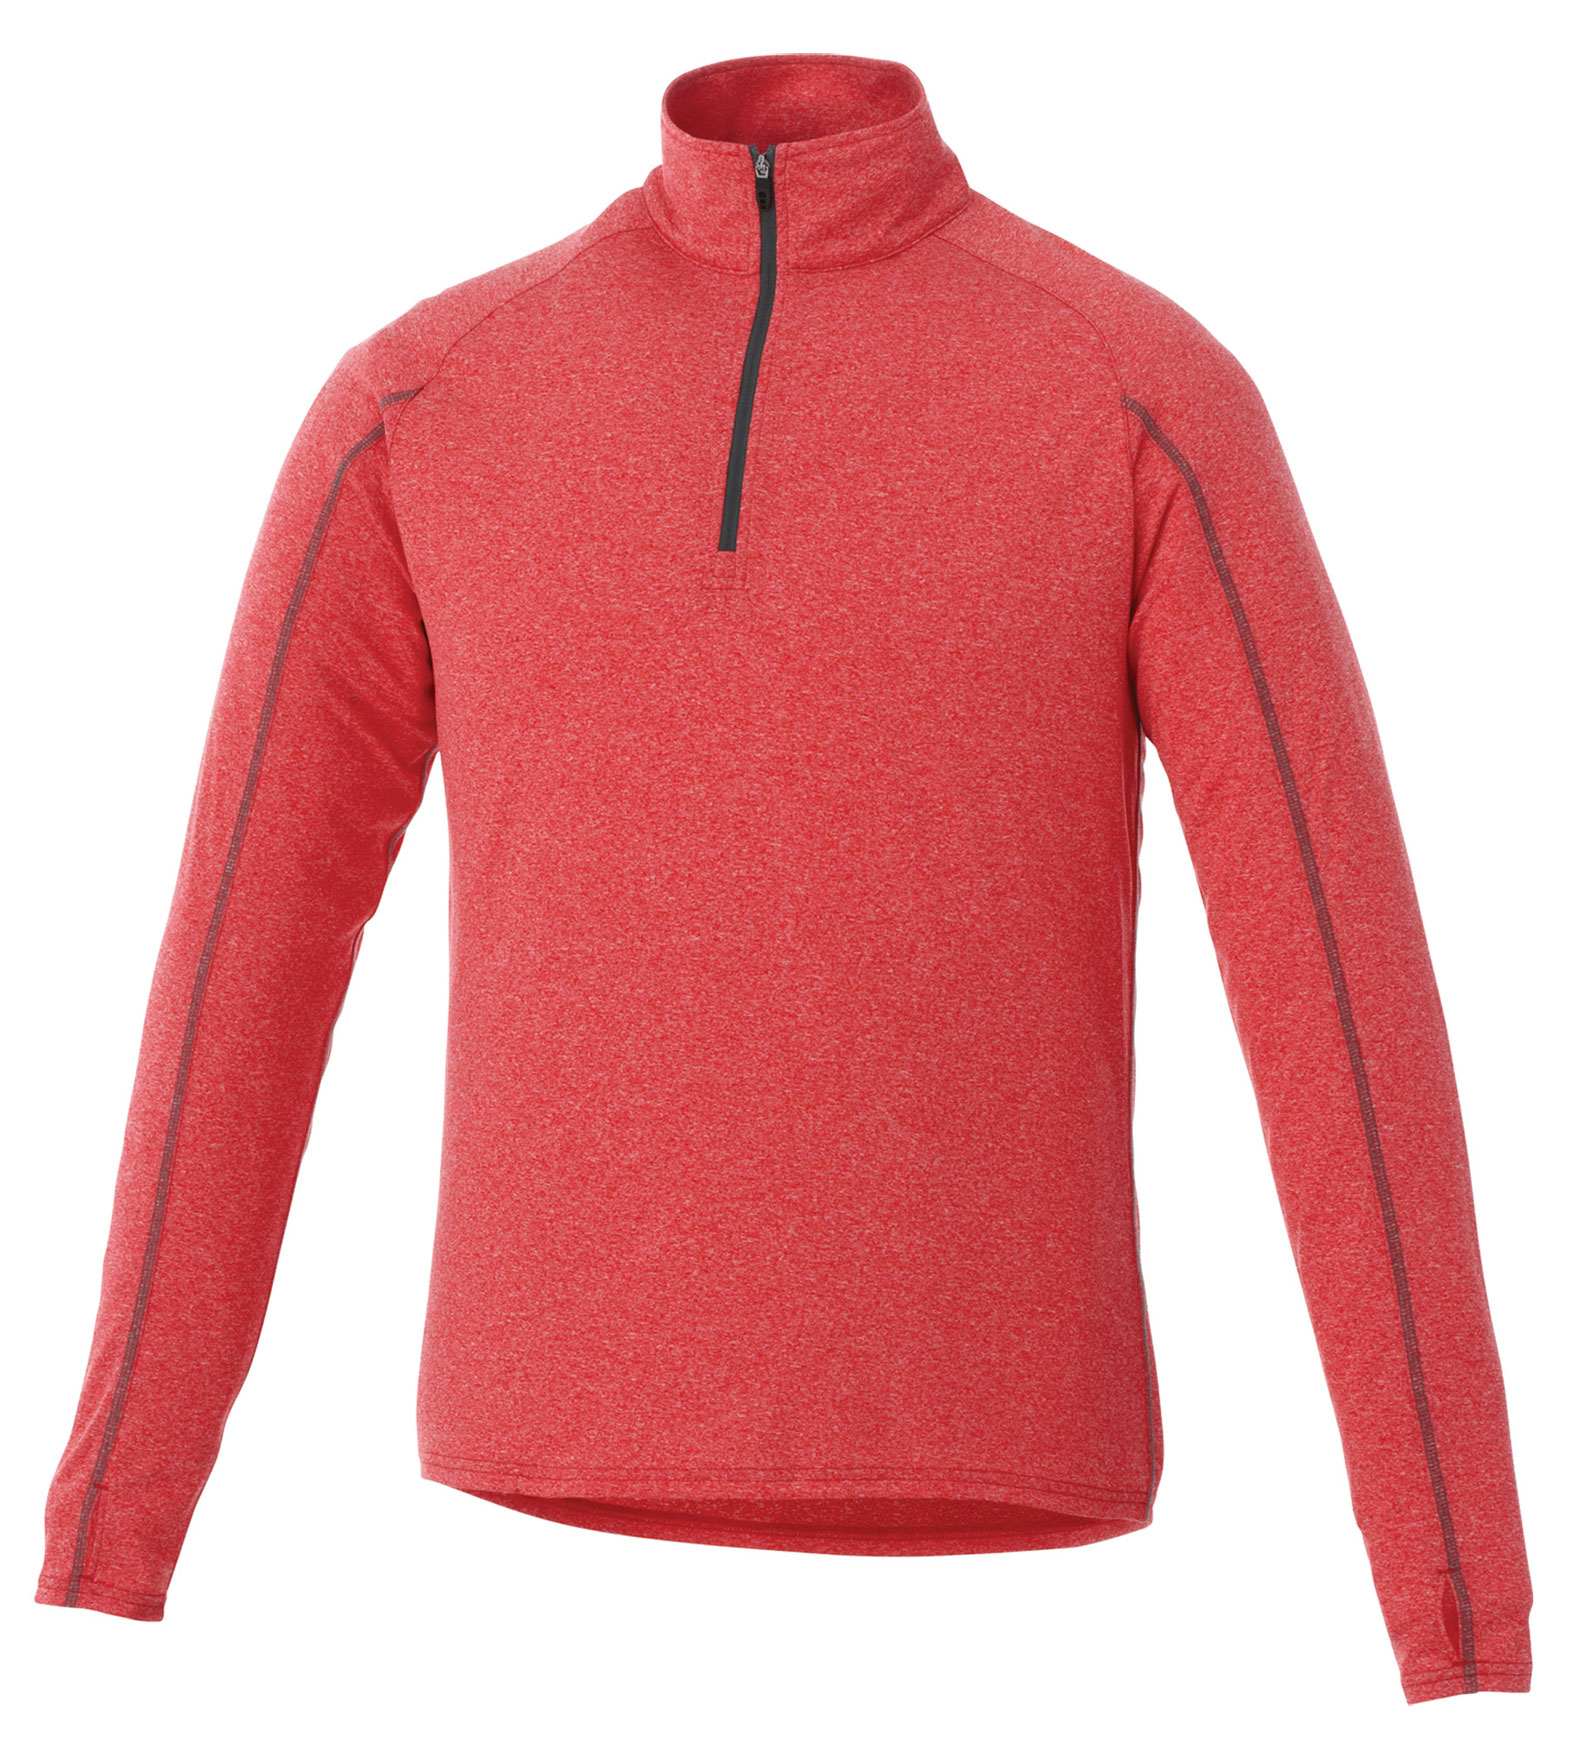 Trimark Mens Taza Knit Quarter Zip